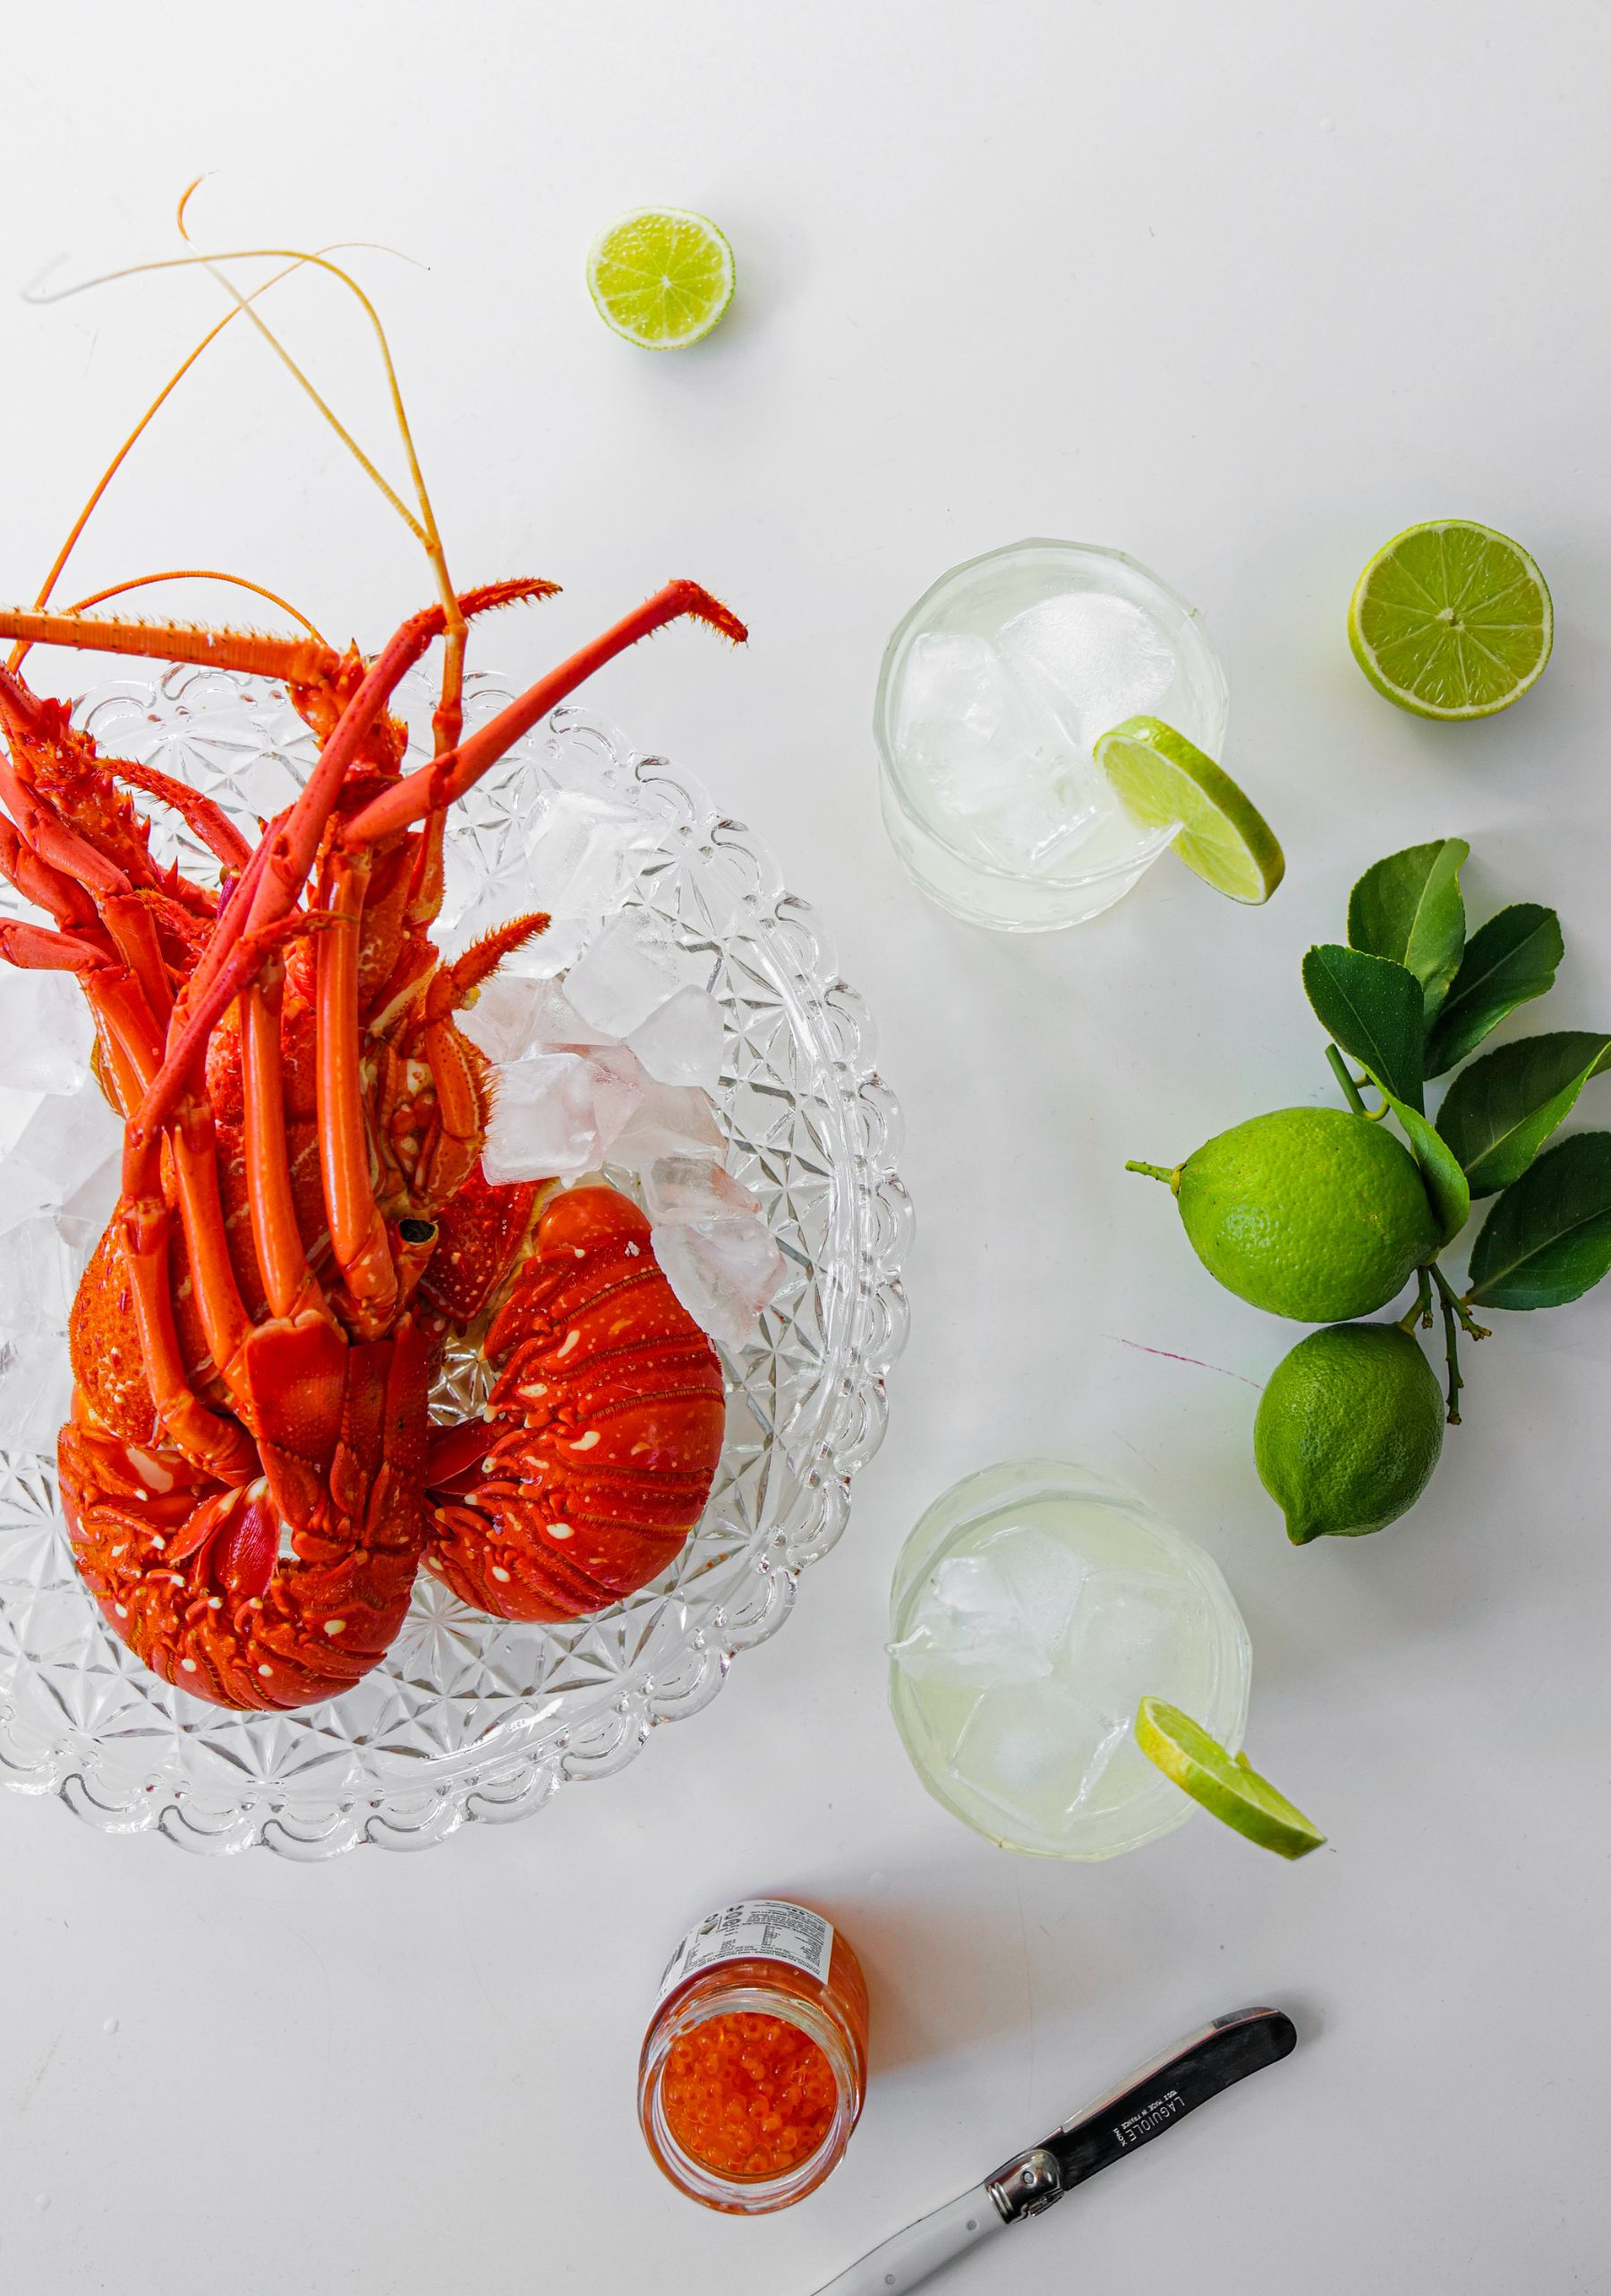 Lobsterpalooza Delivered to Your Door - Melbourne's Food Squad in Action.